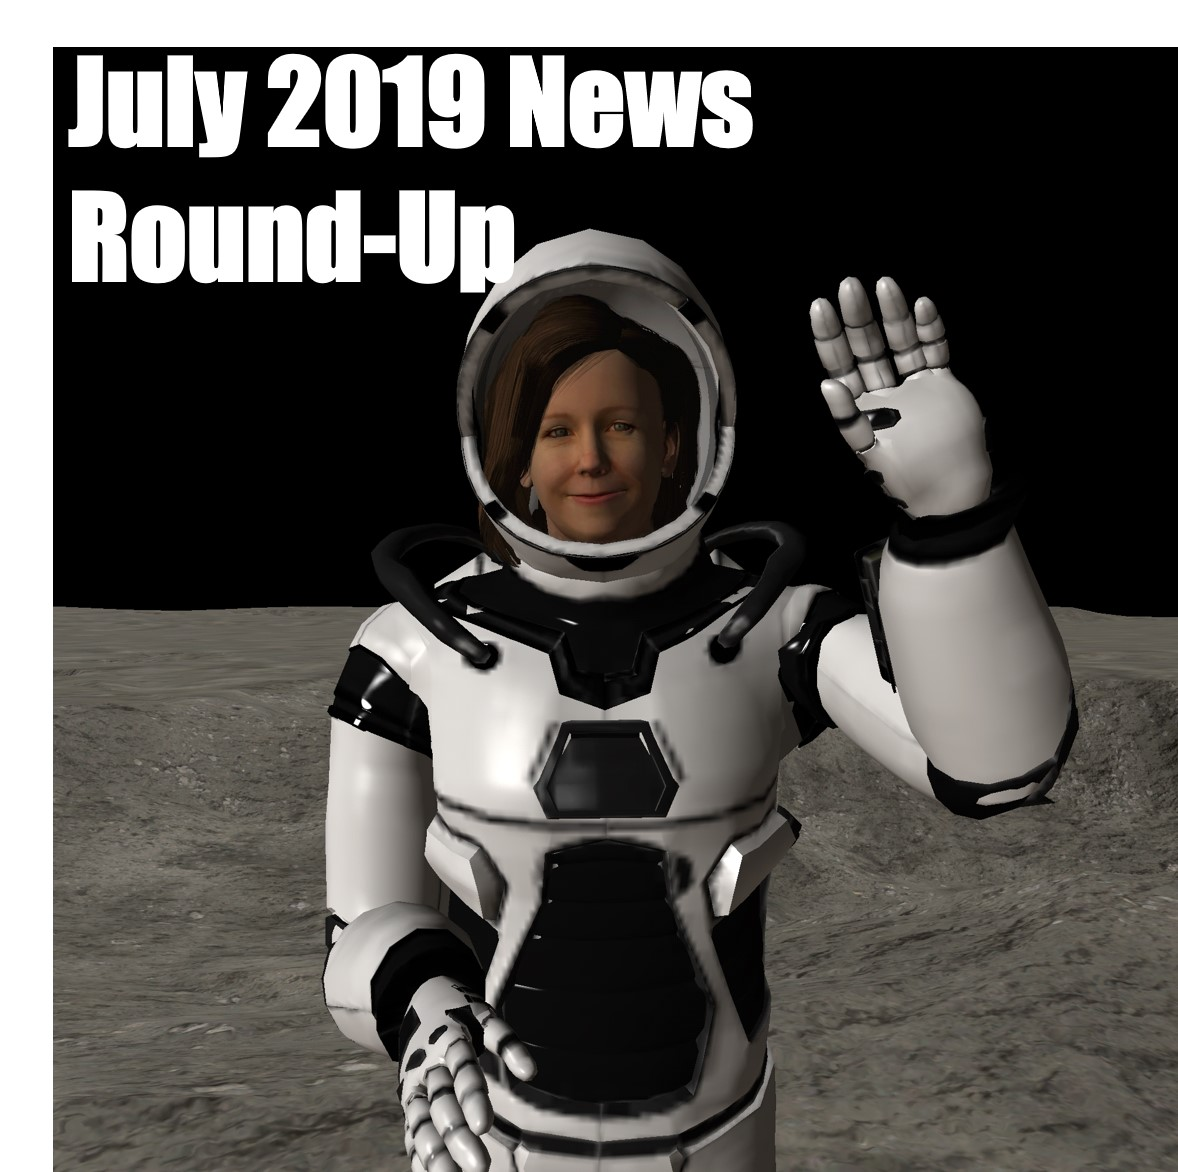 Immersive News Round-Up July 2019